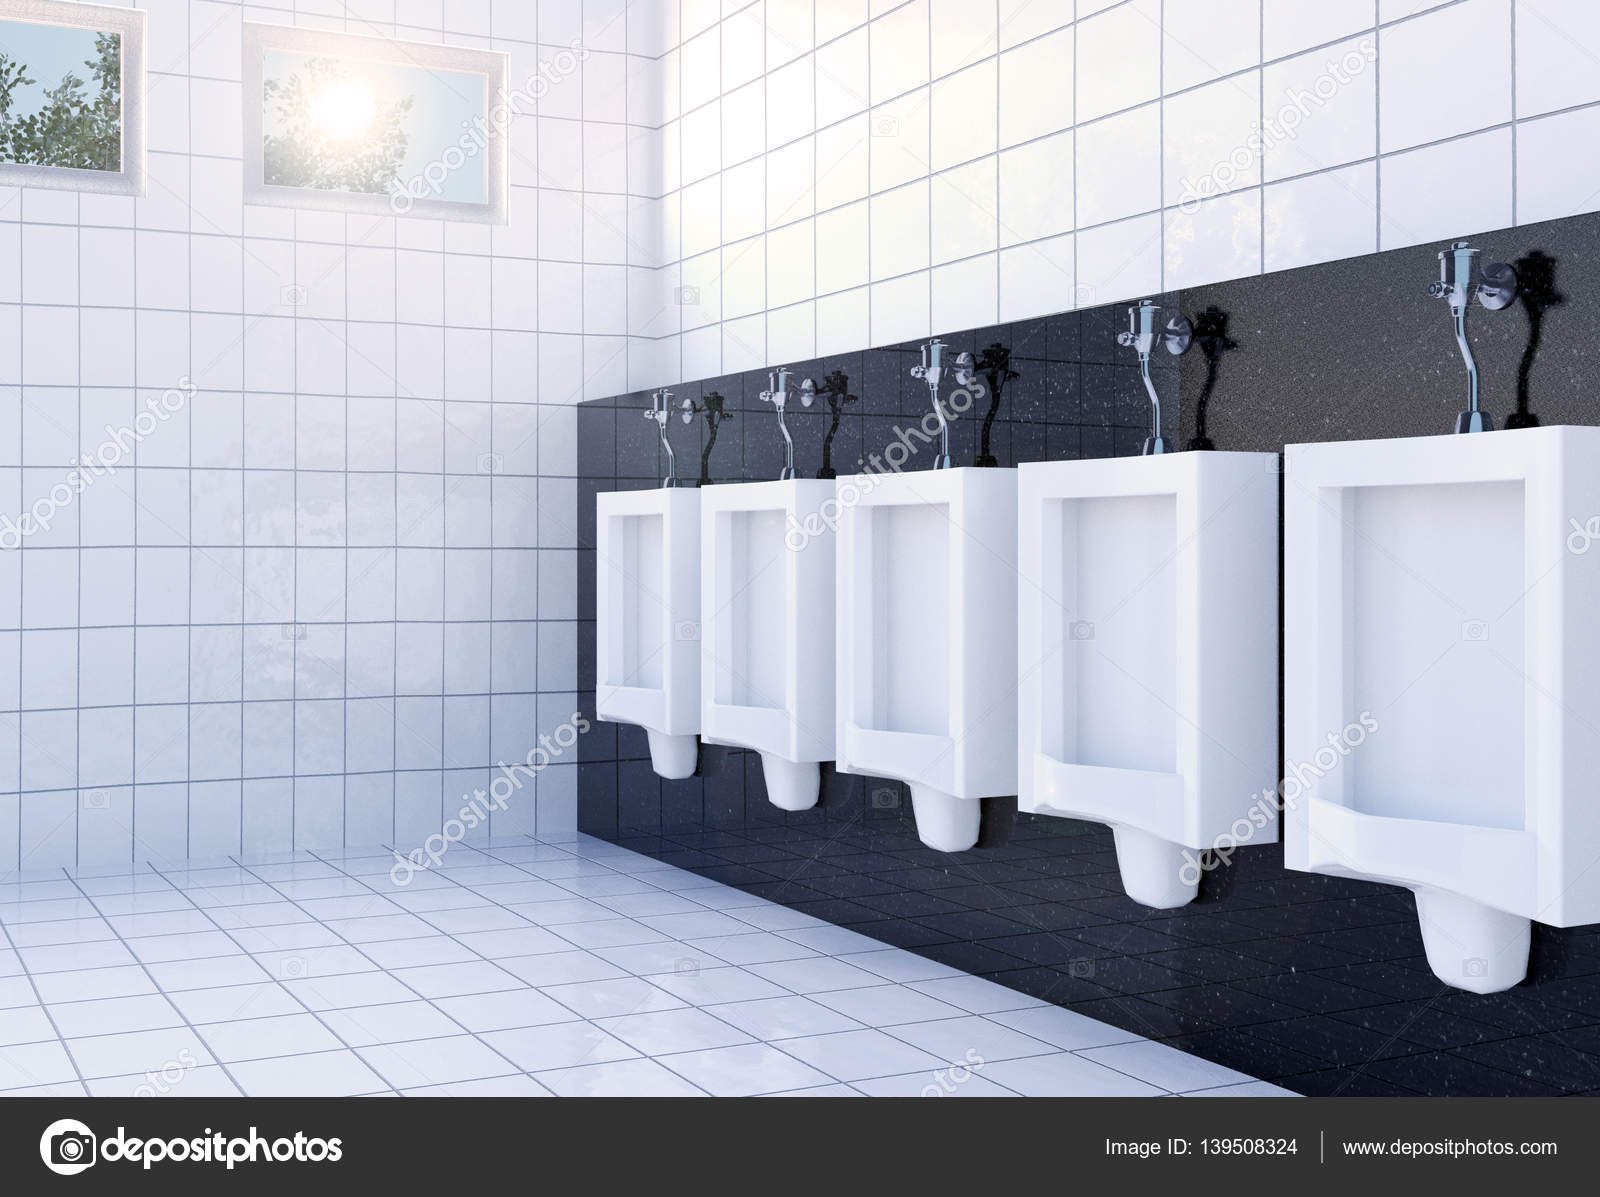 Public men\'s toilet room interior with white urinals row on white ...